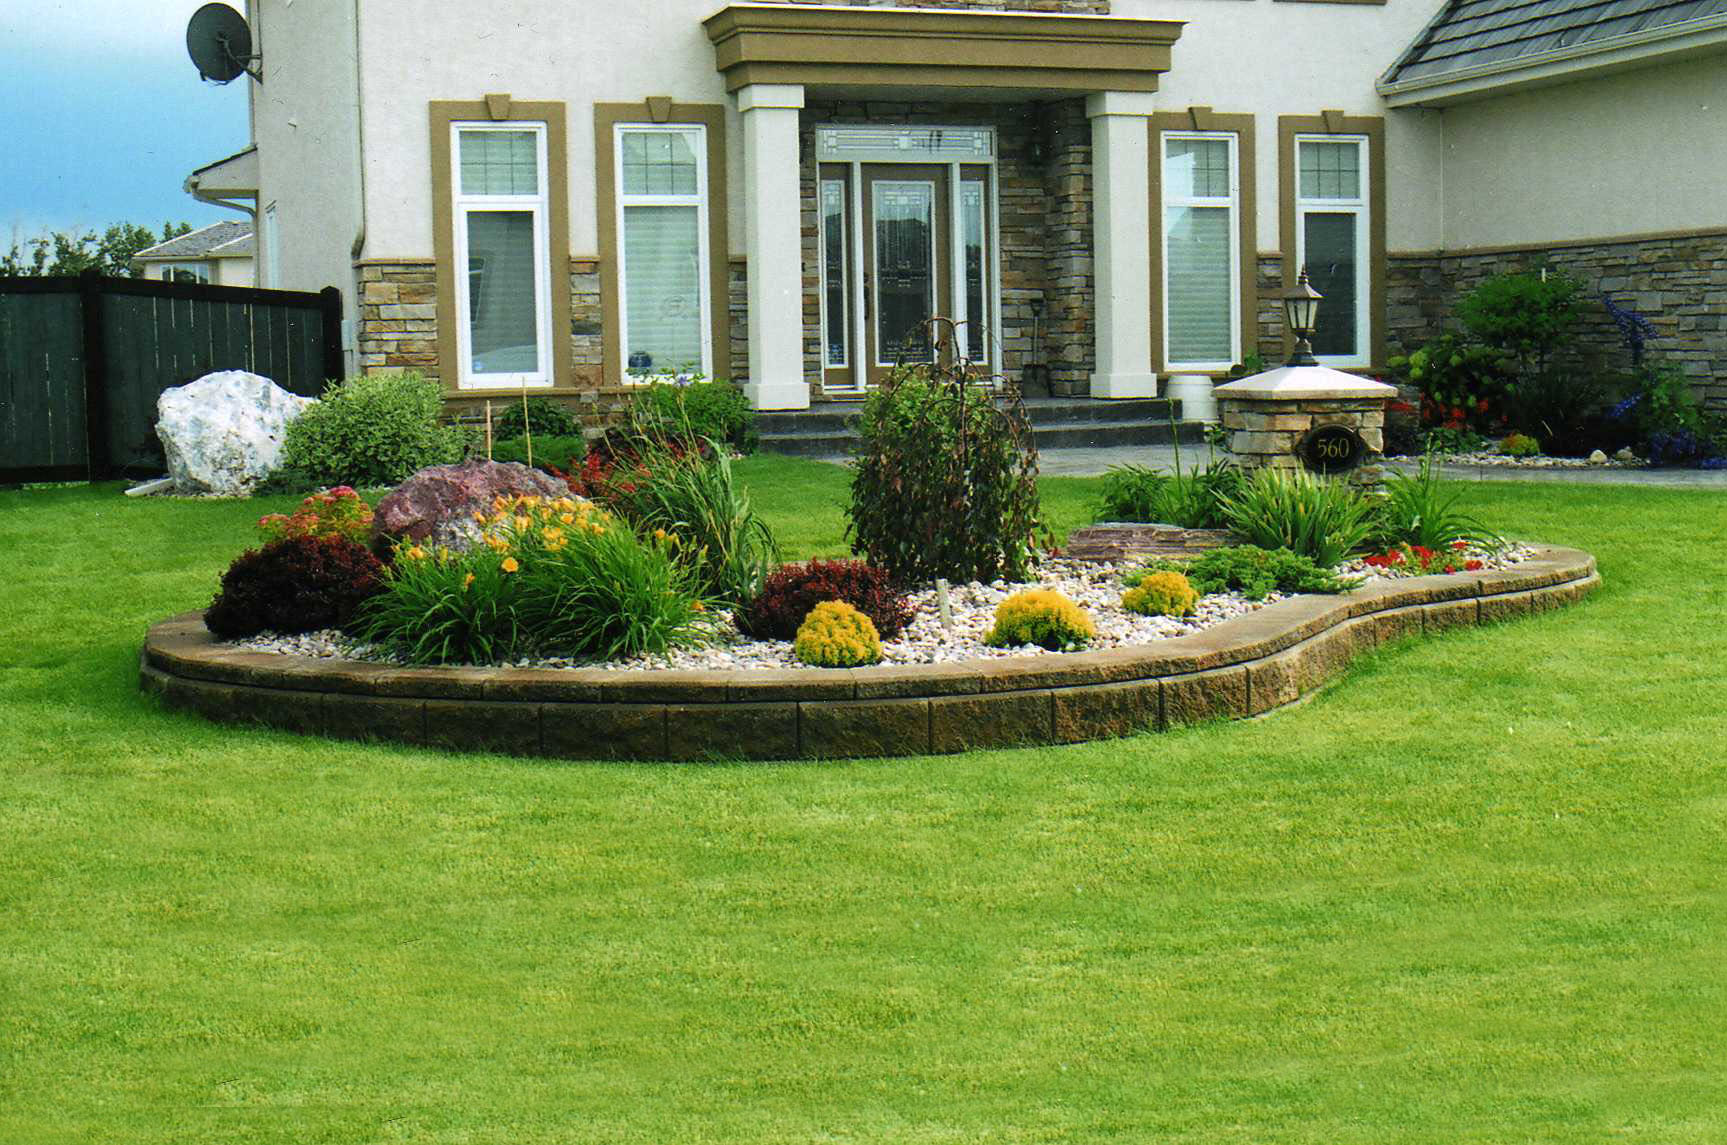 Astonishing Design Of The Green Grass Open Wide Areas With Brown Little Fences Ideas With Flower Bed Ideas